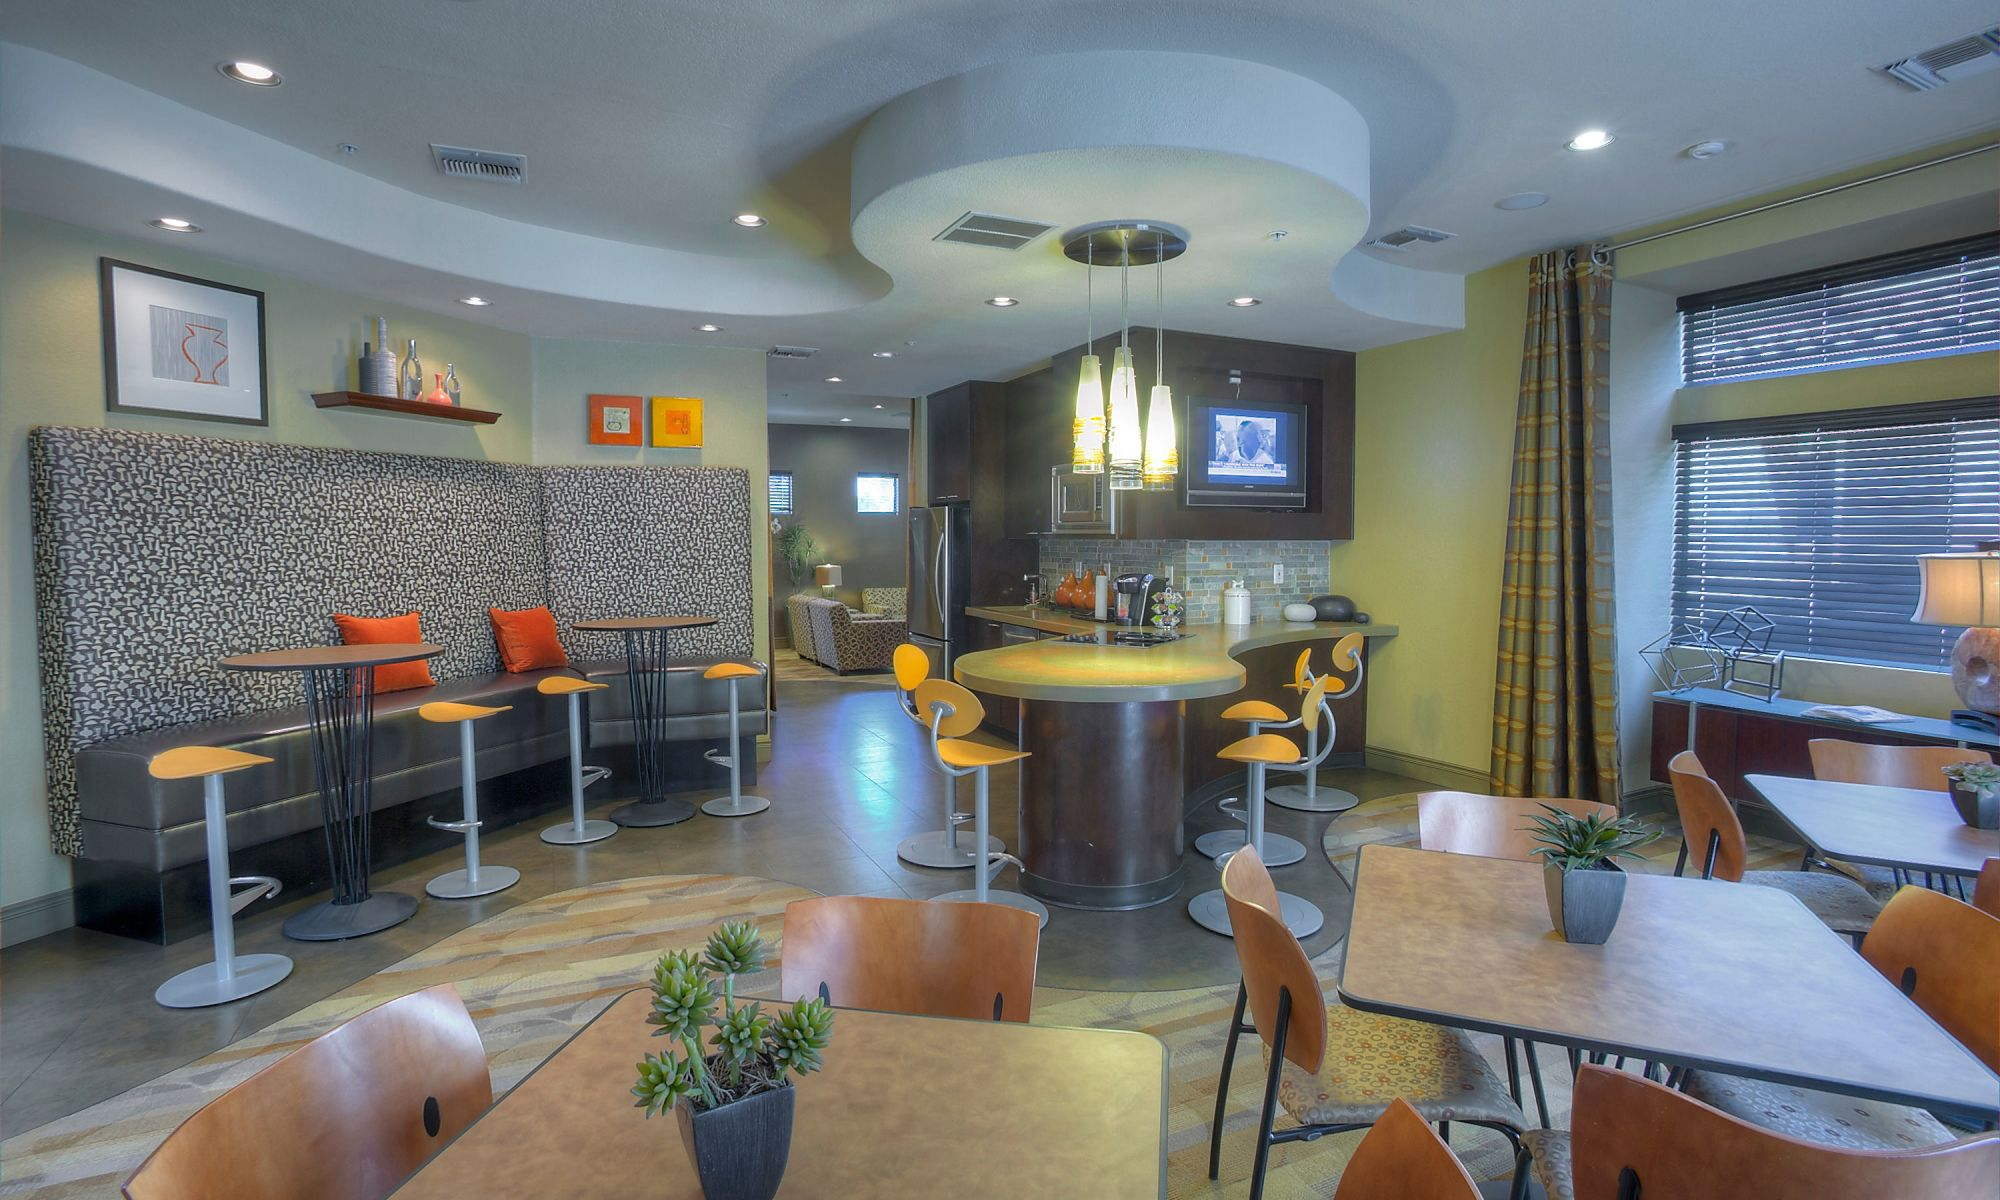 The Regents at Scottsdale apartments in Scottsdale, Arizona